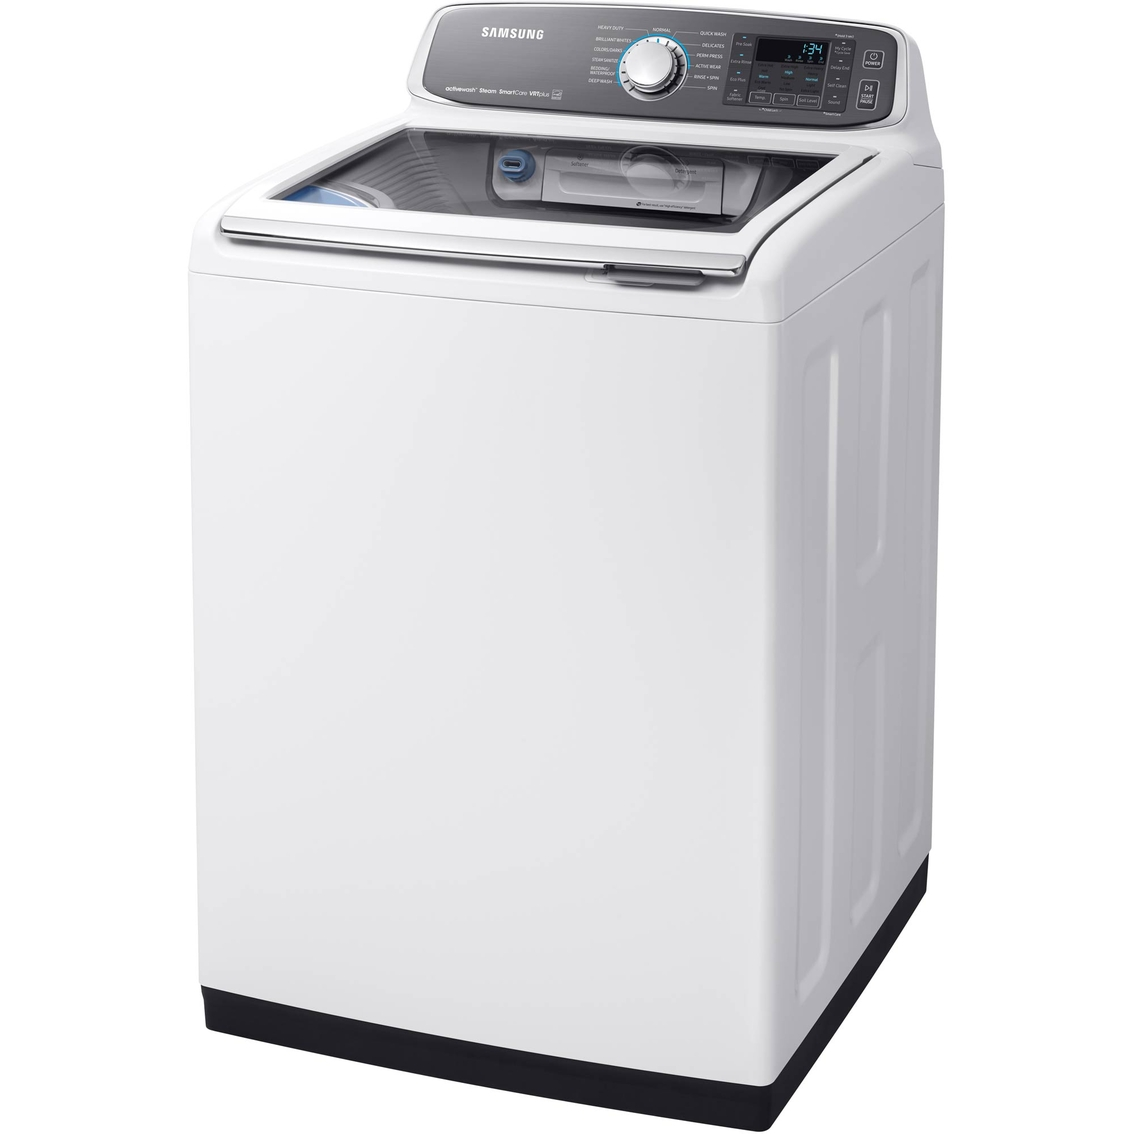 Samsung 5.2 Cu. Ft. Top Load Washer | Washers & Dryers ...